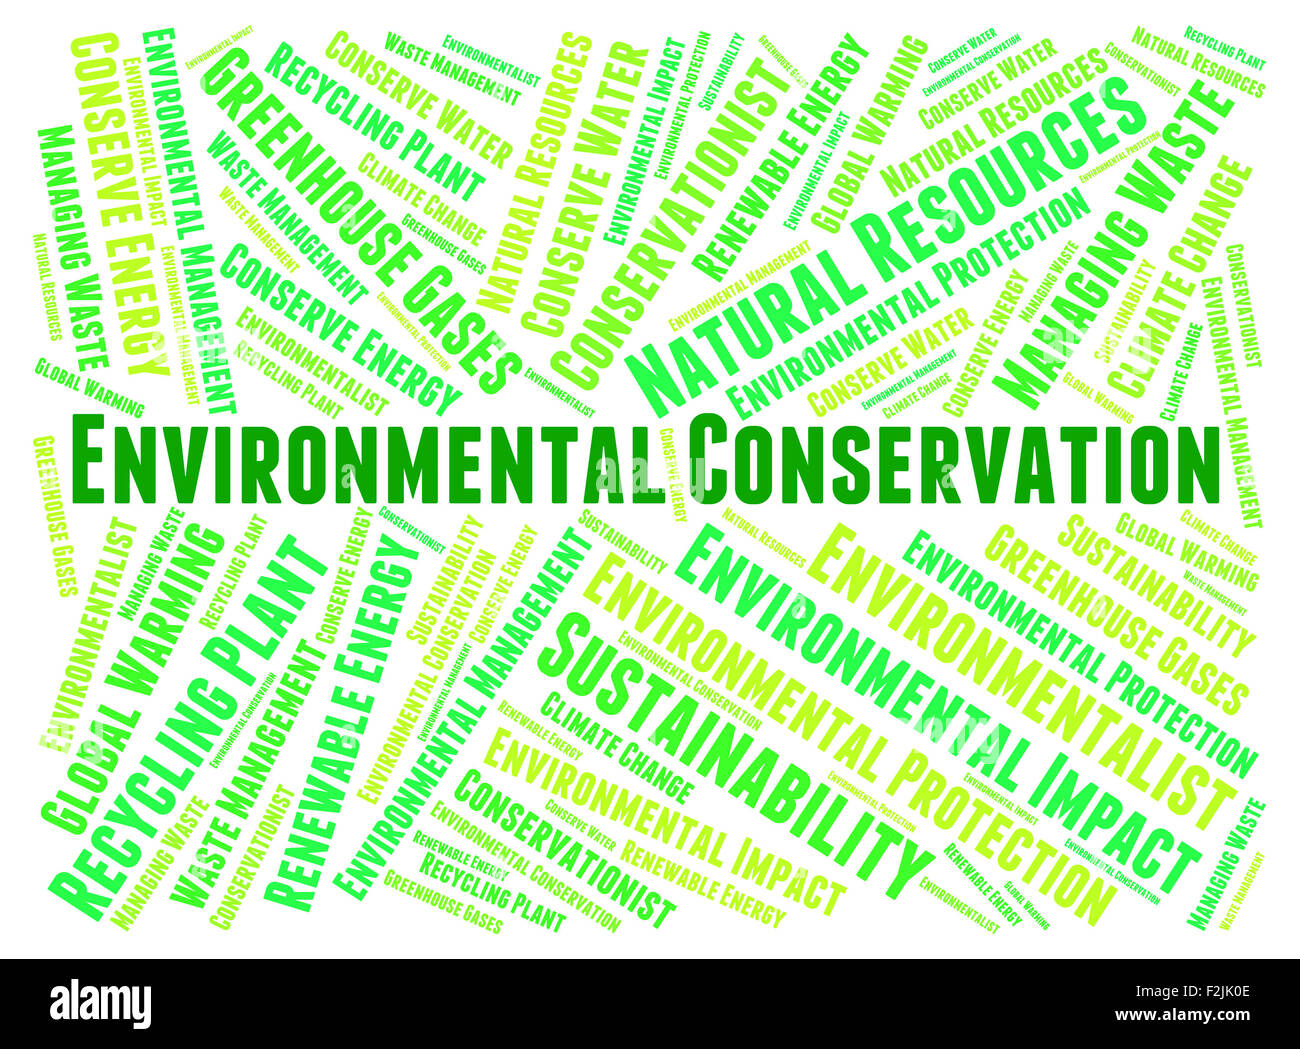 Environmental Conservation Meaning Conserving Protection And Environmental Conservation Meaning Conserving Protection And Conserve FJKE Stock Photo Environmental Conservation Meaning Conserving Protection And Conserve